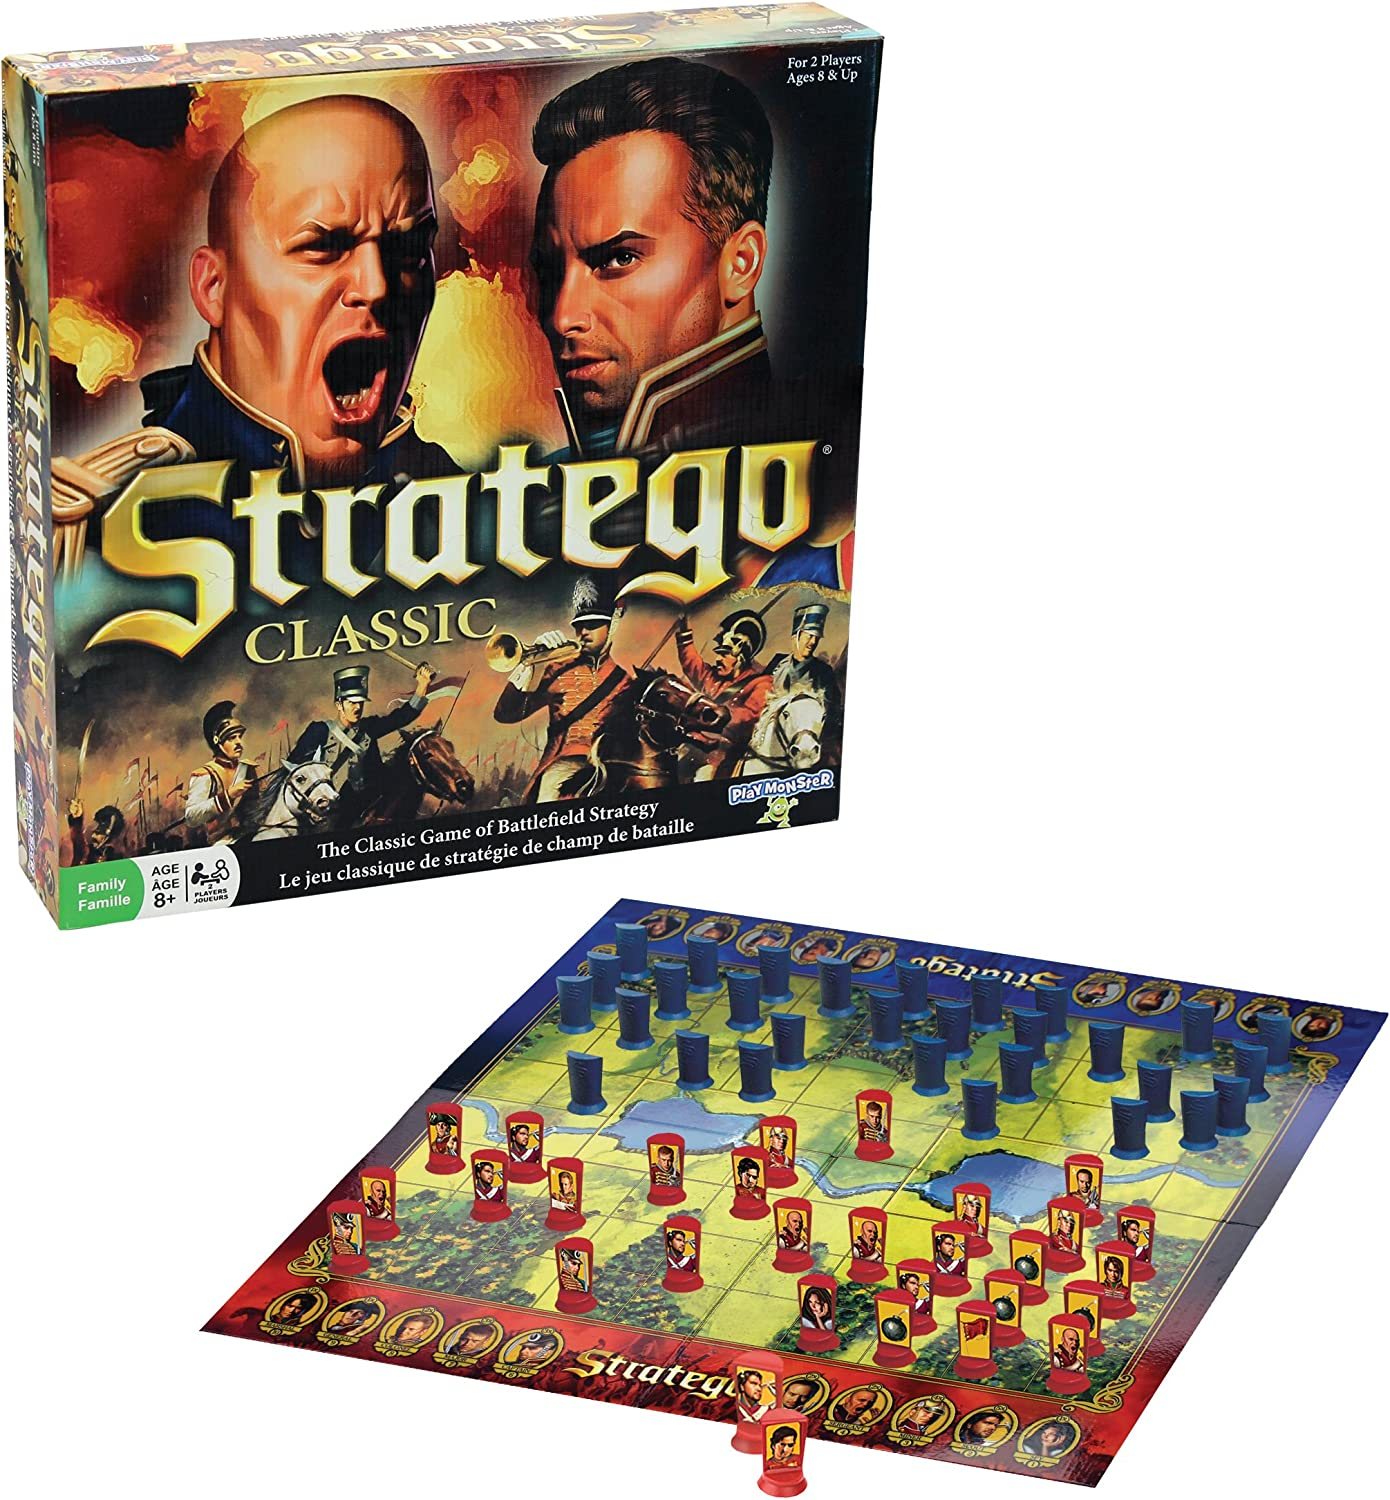 Classic Strategy Board Game by Stratego: Amazon.es: Juguetes y juegos